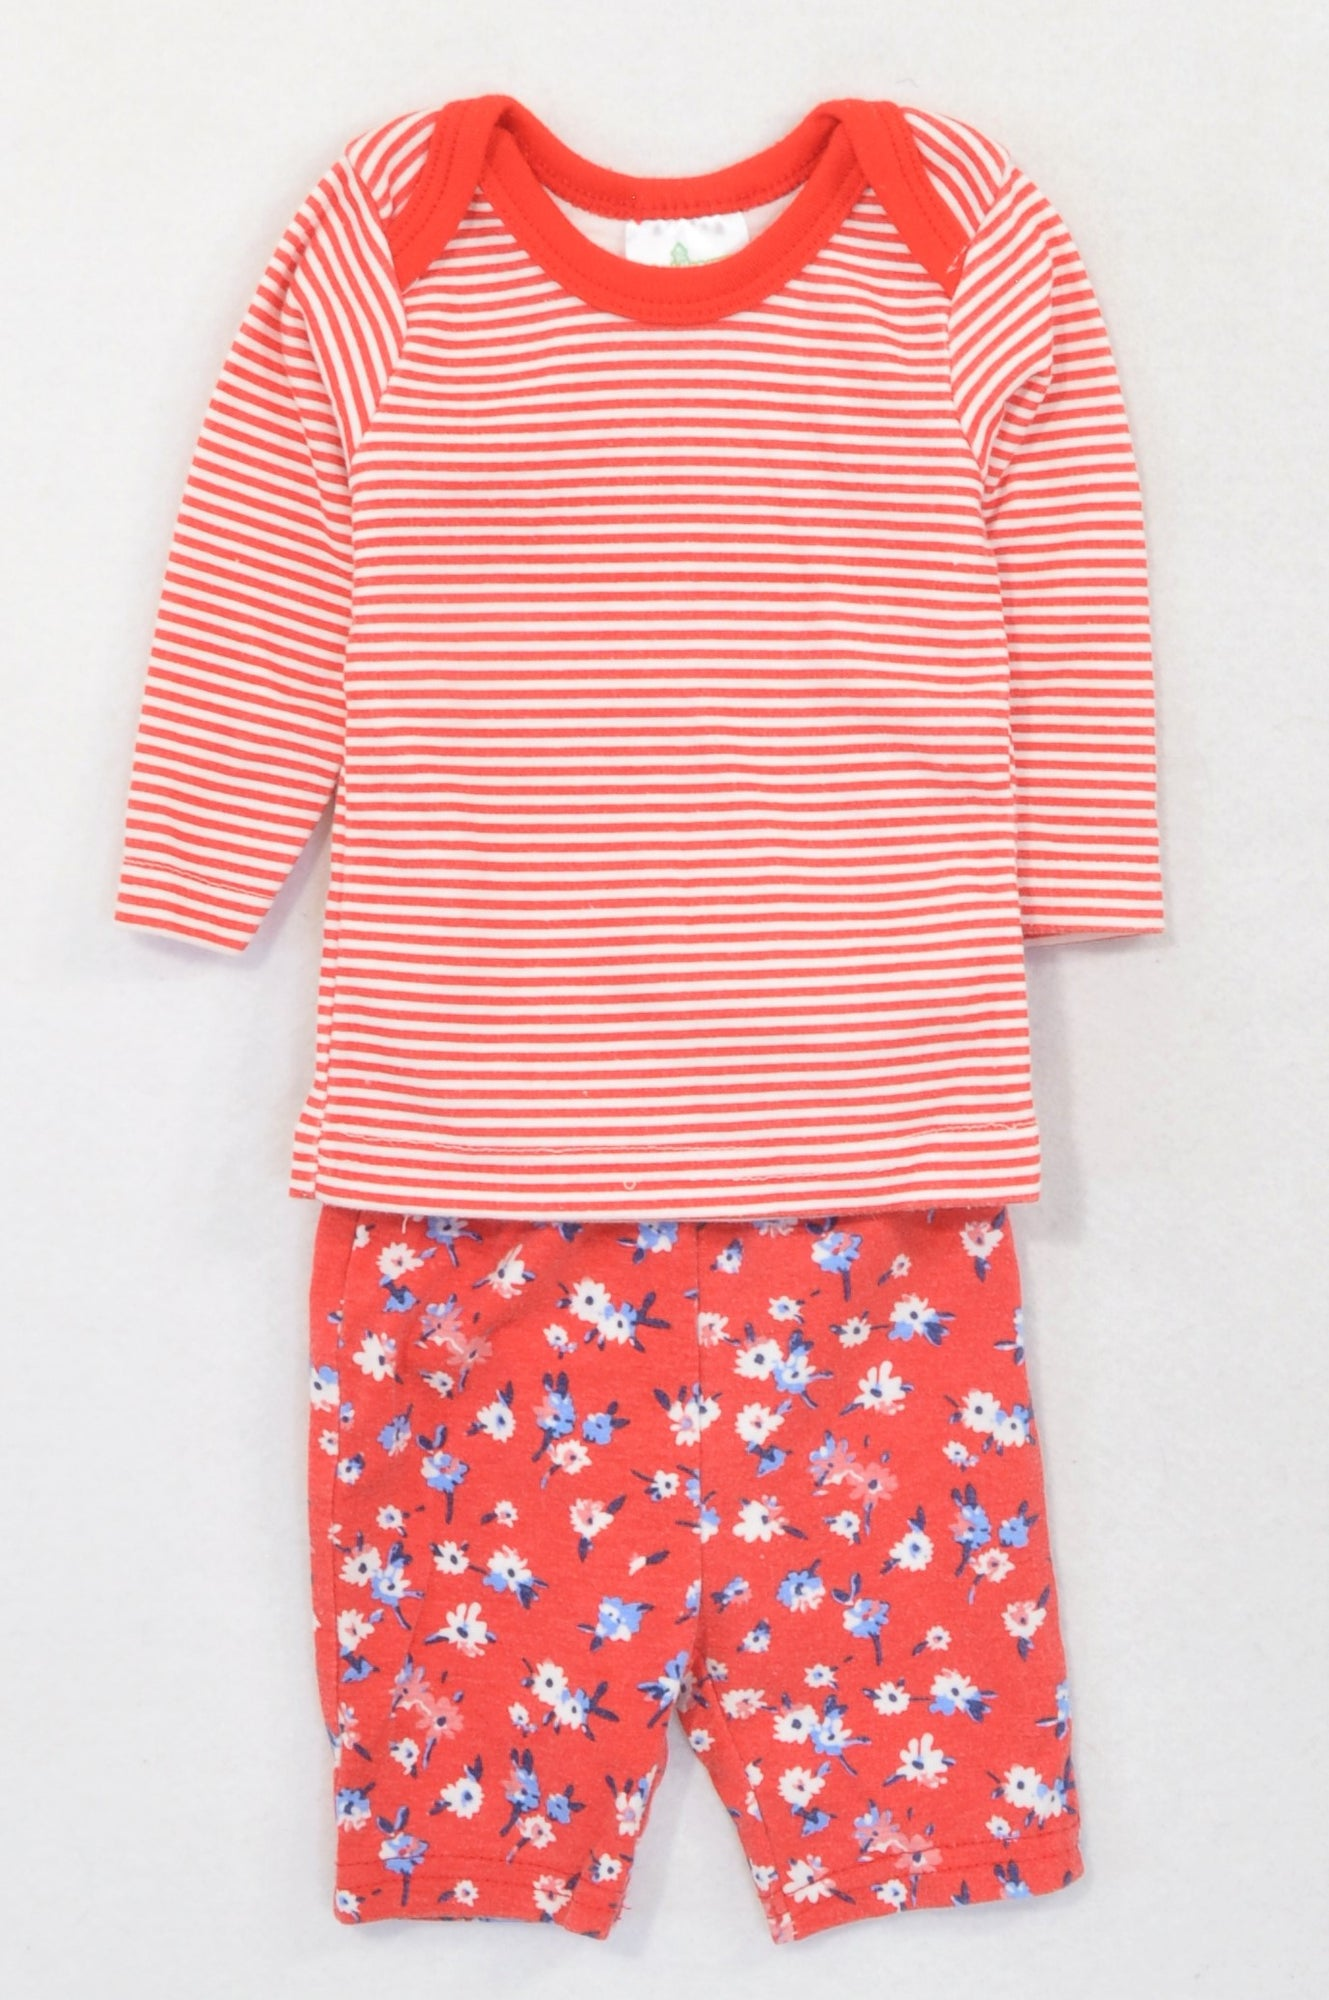 Pep Red Stripe Shirt & Floral Cropped Leggings Outfit Girls 0-3 months